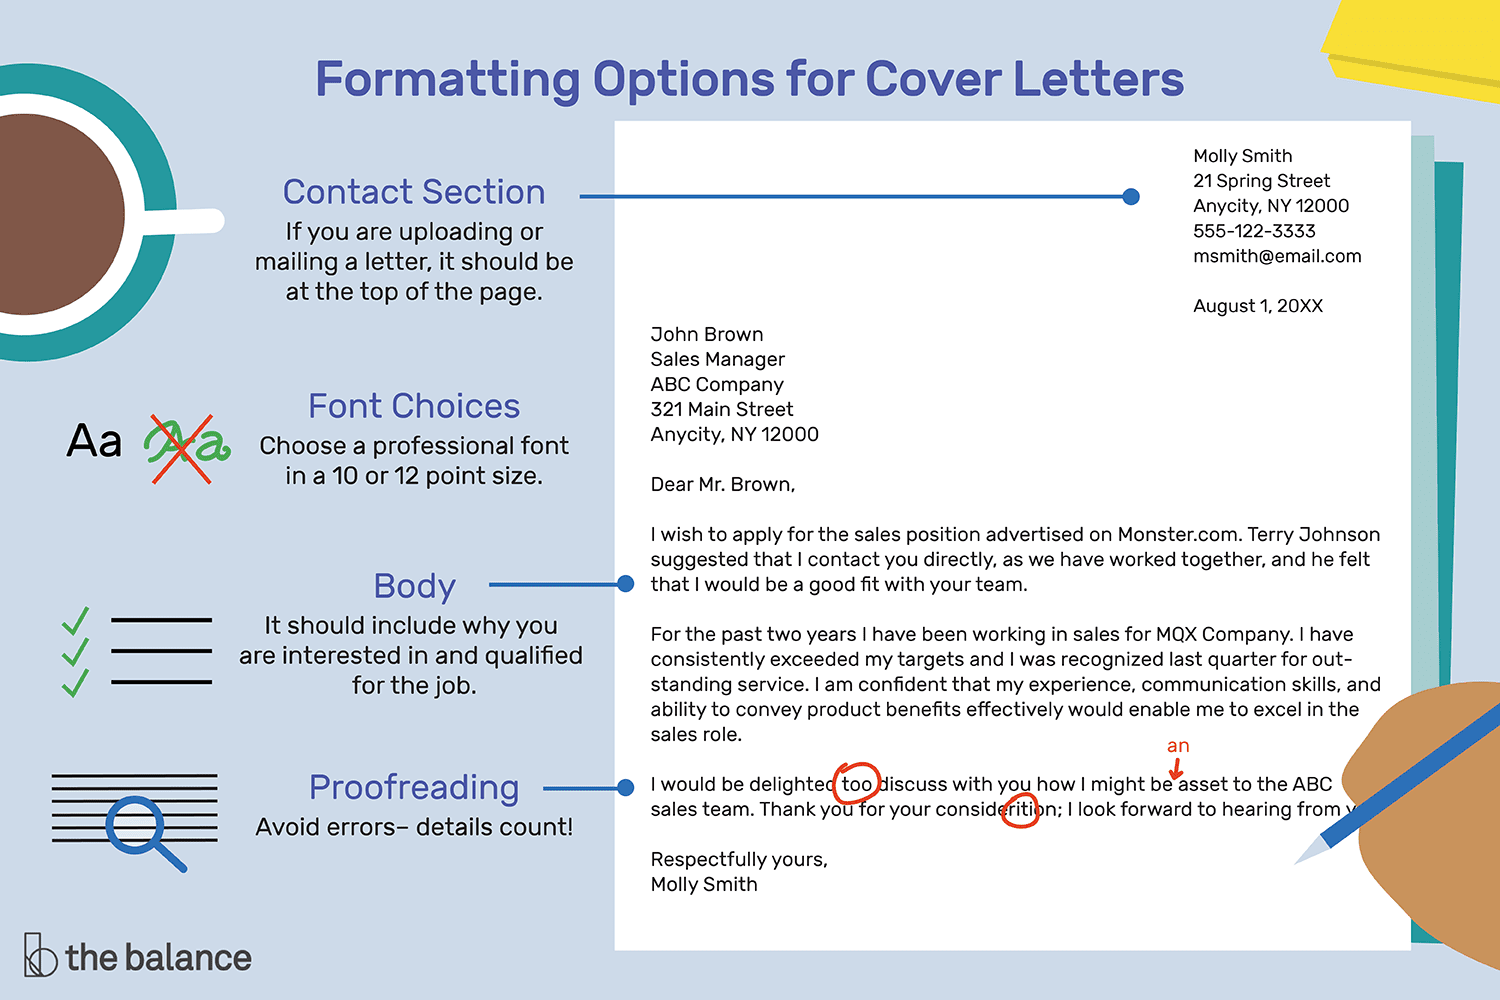 Use Correct Business Language Address Your Cover Letter